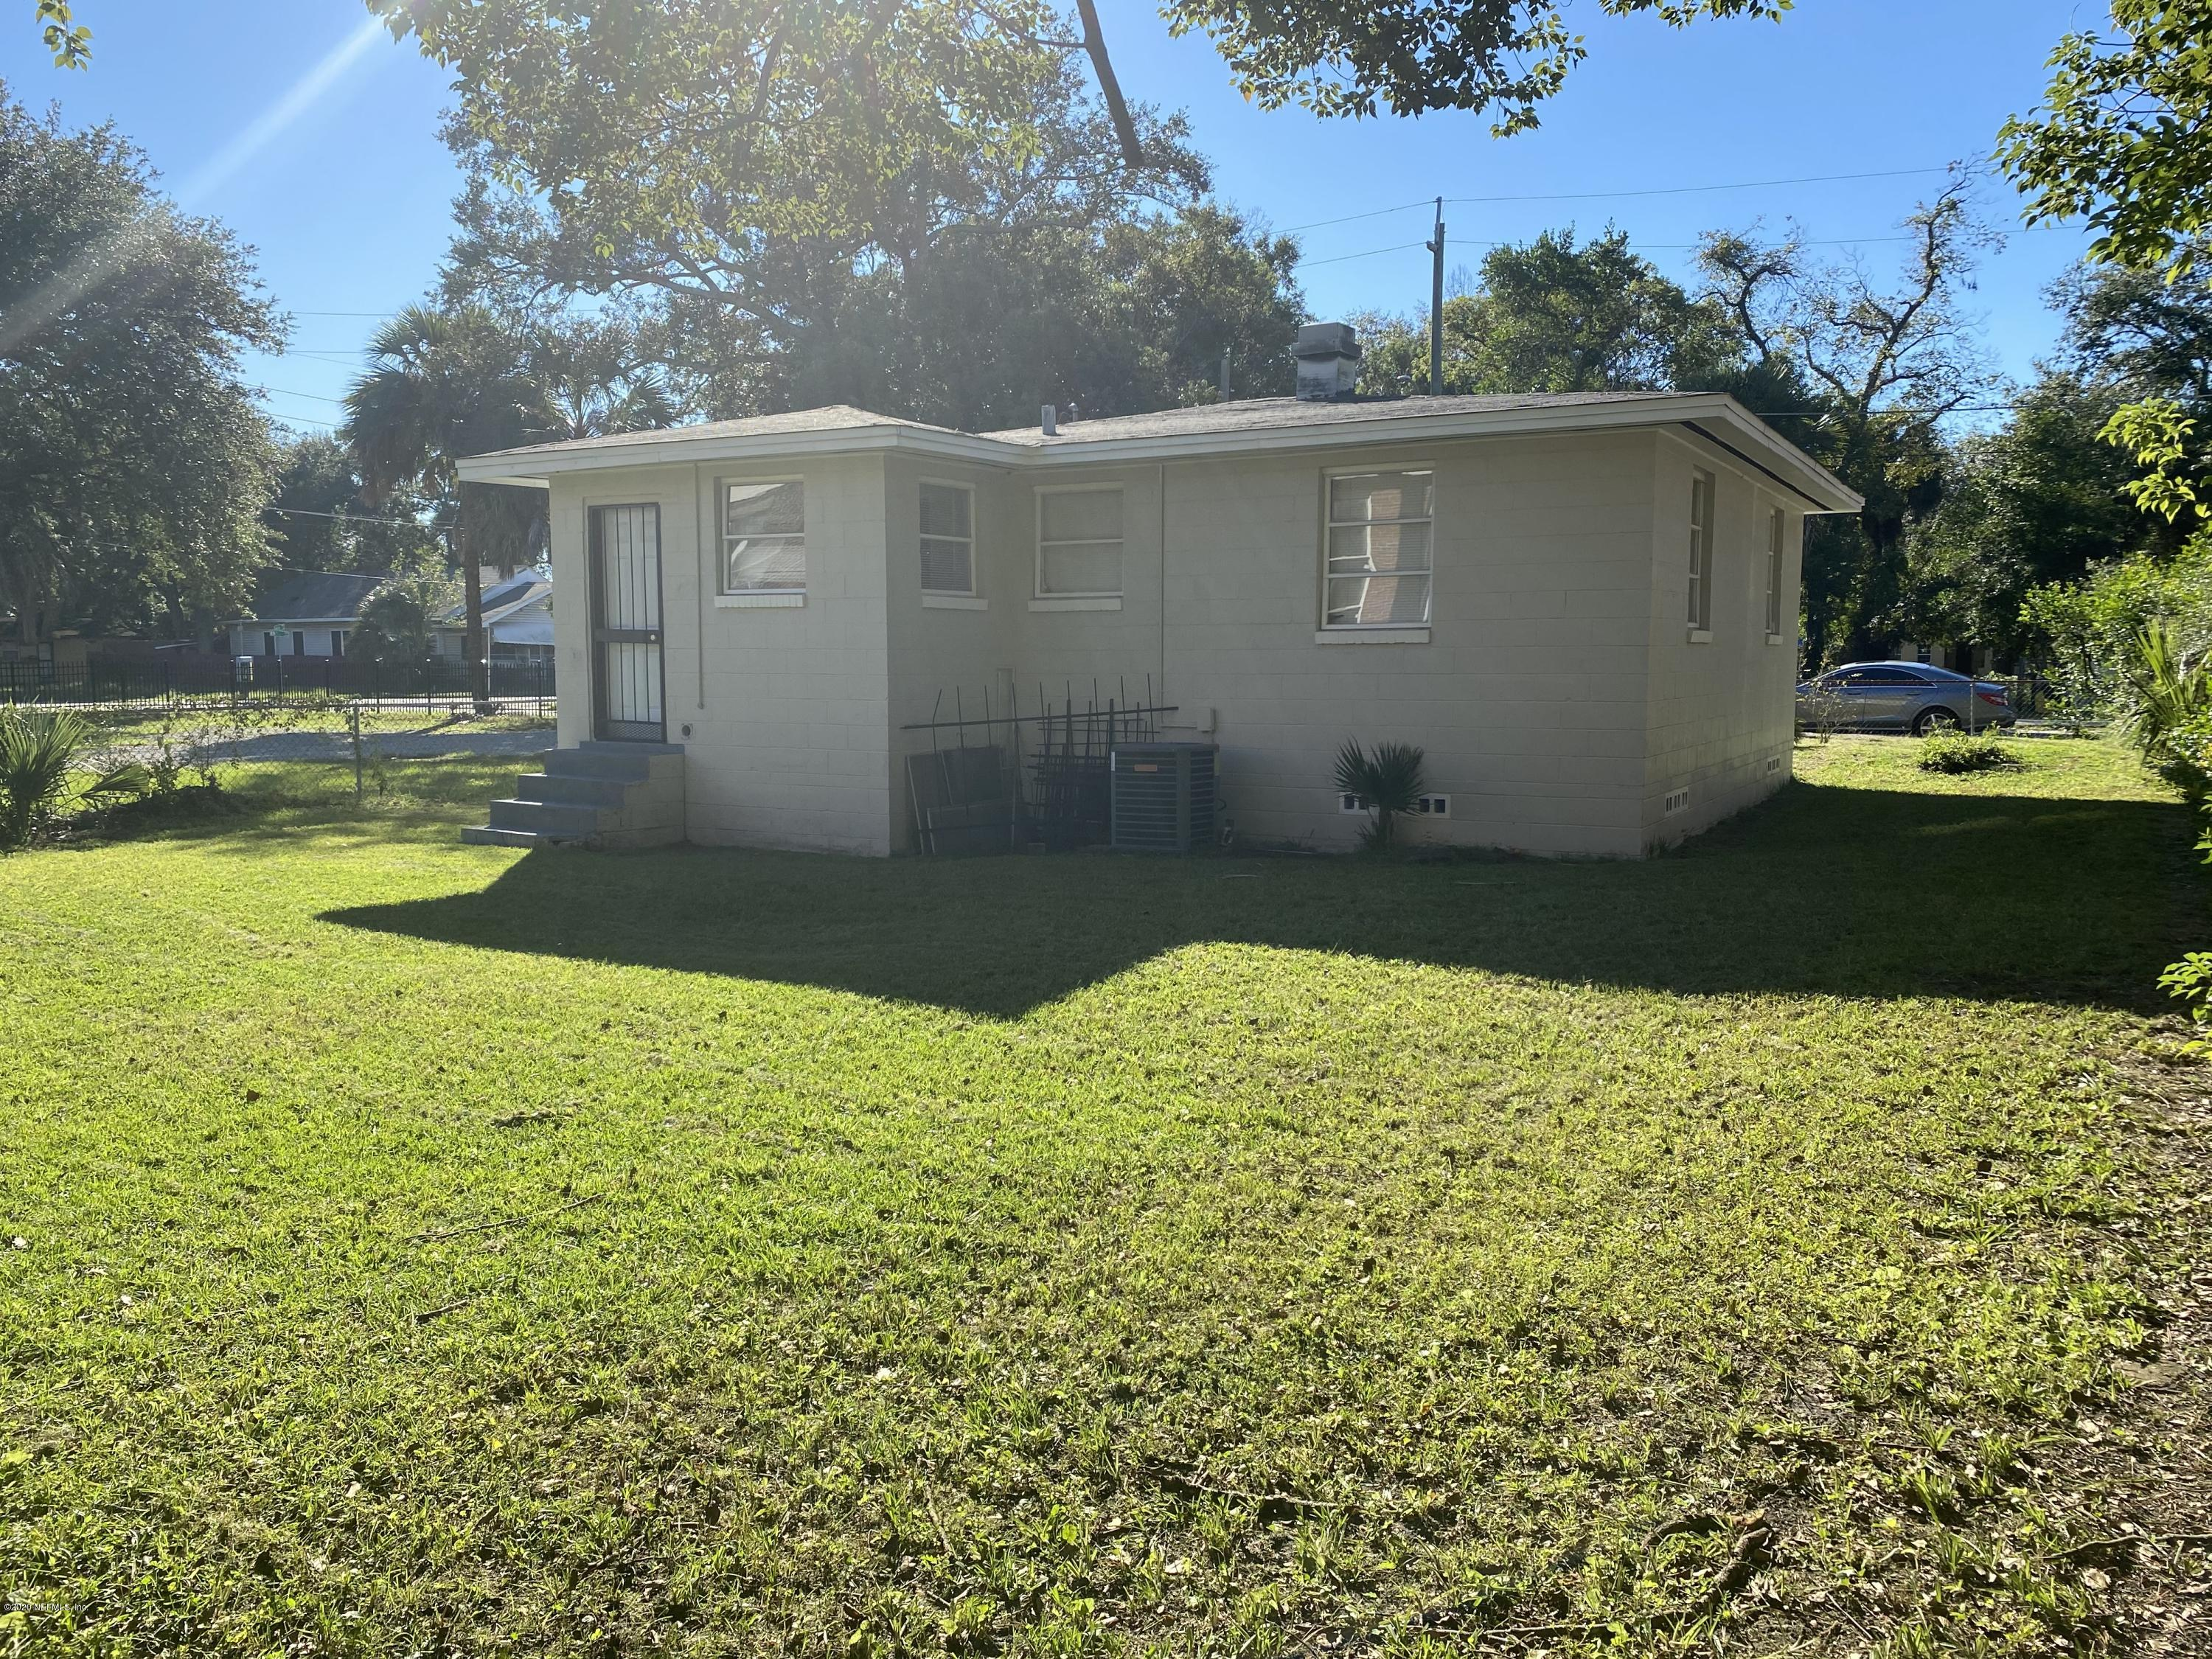 1817 FRANCIS, JACKSONVILLE, FLORIDA 32209, 2 Bedrooms Bedrooms, ,1 BathroomBathrooms,Residential,For sale,FRANCIS,1081089